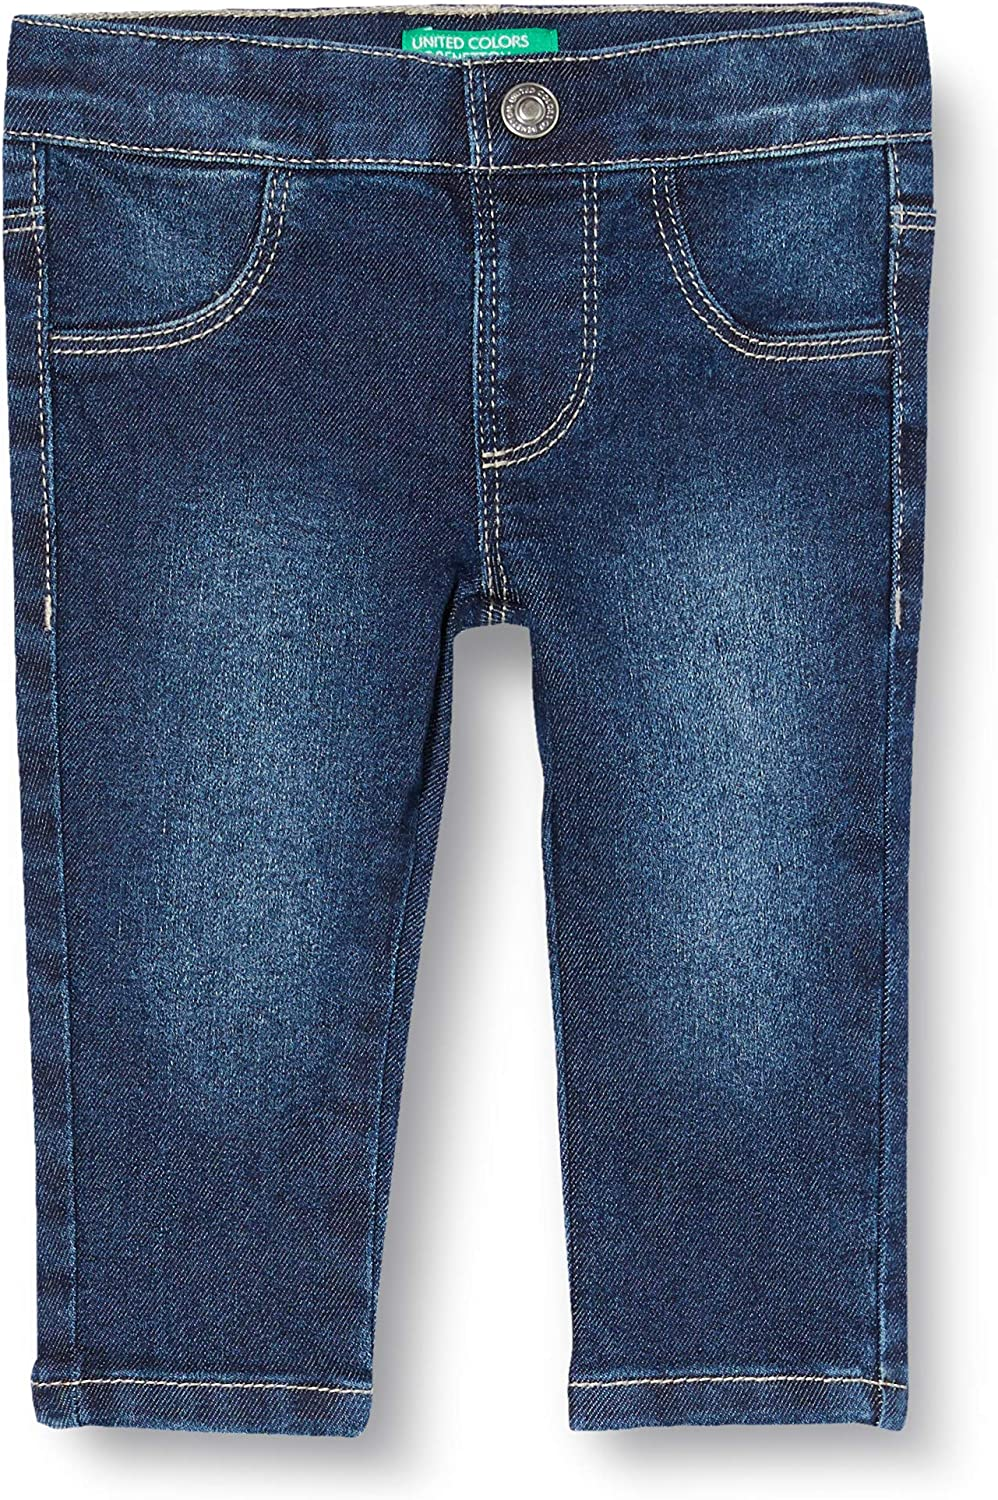 United Colors of Benetton Jeans Bambina